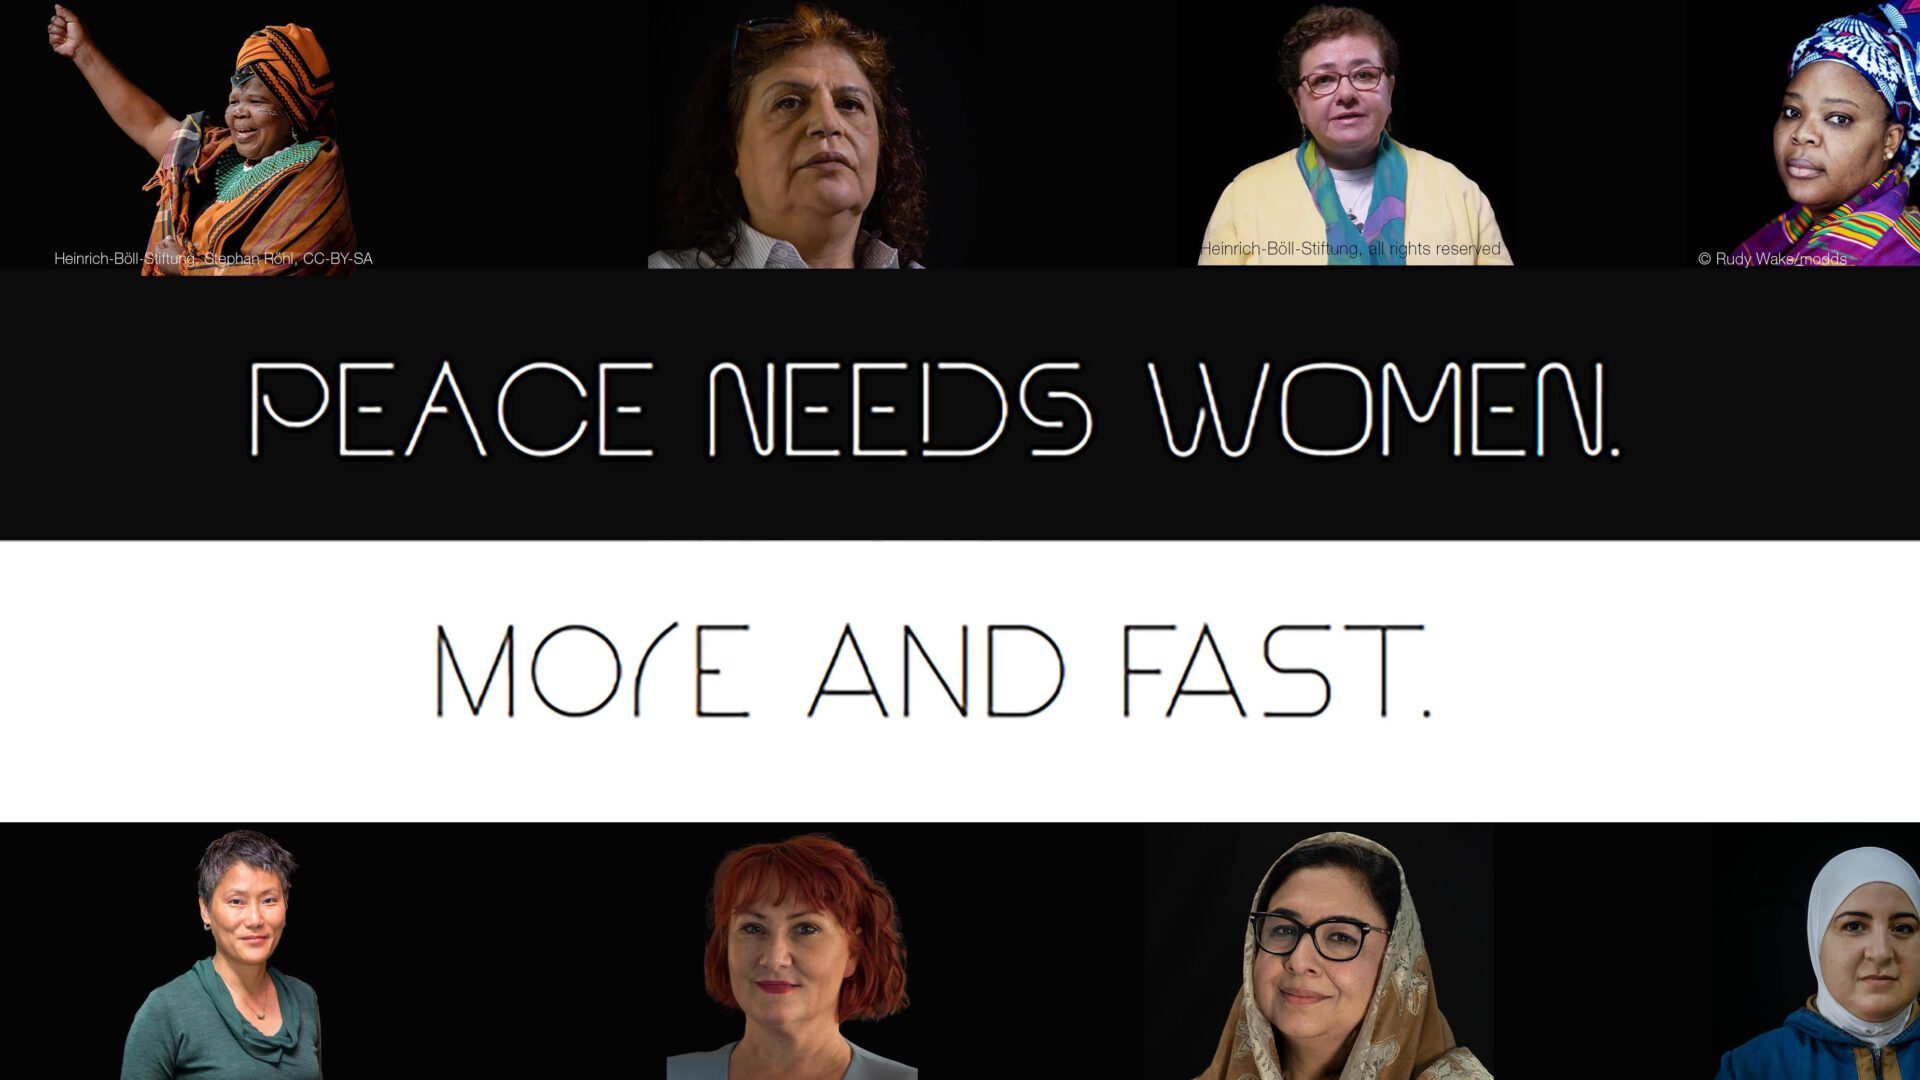 #SHEcurity: Peace needs women. More and fast.